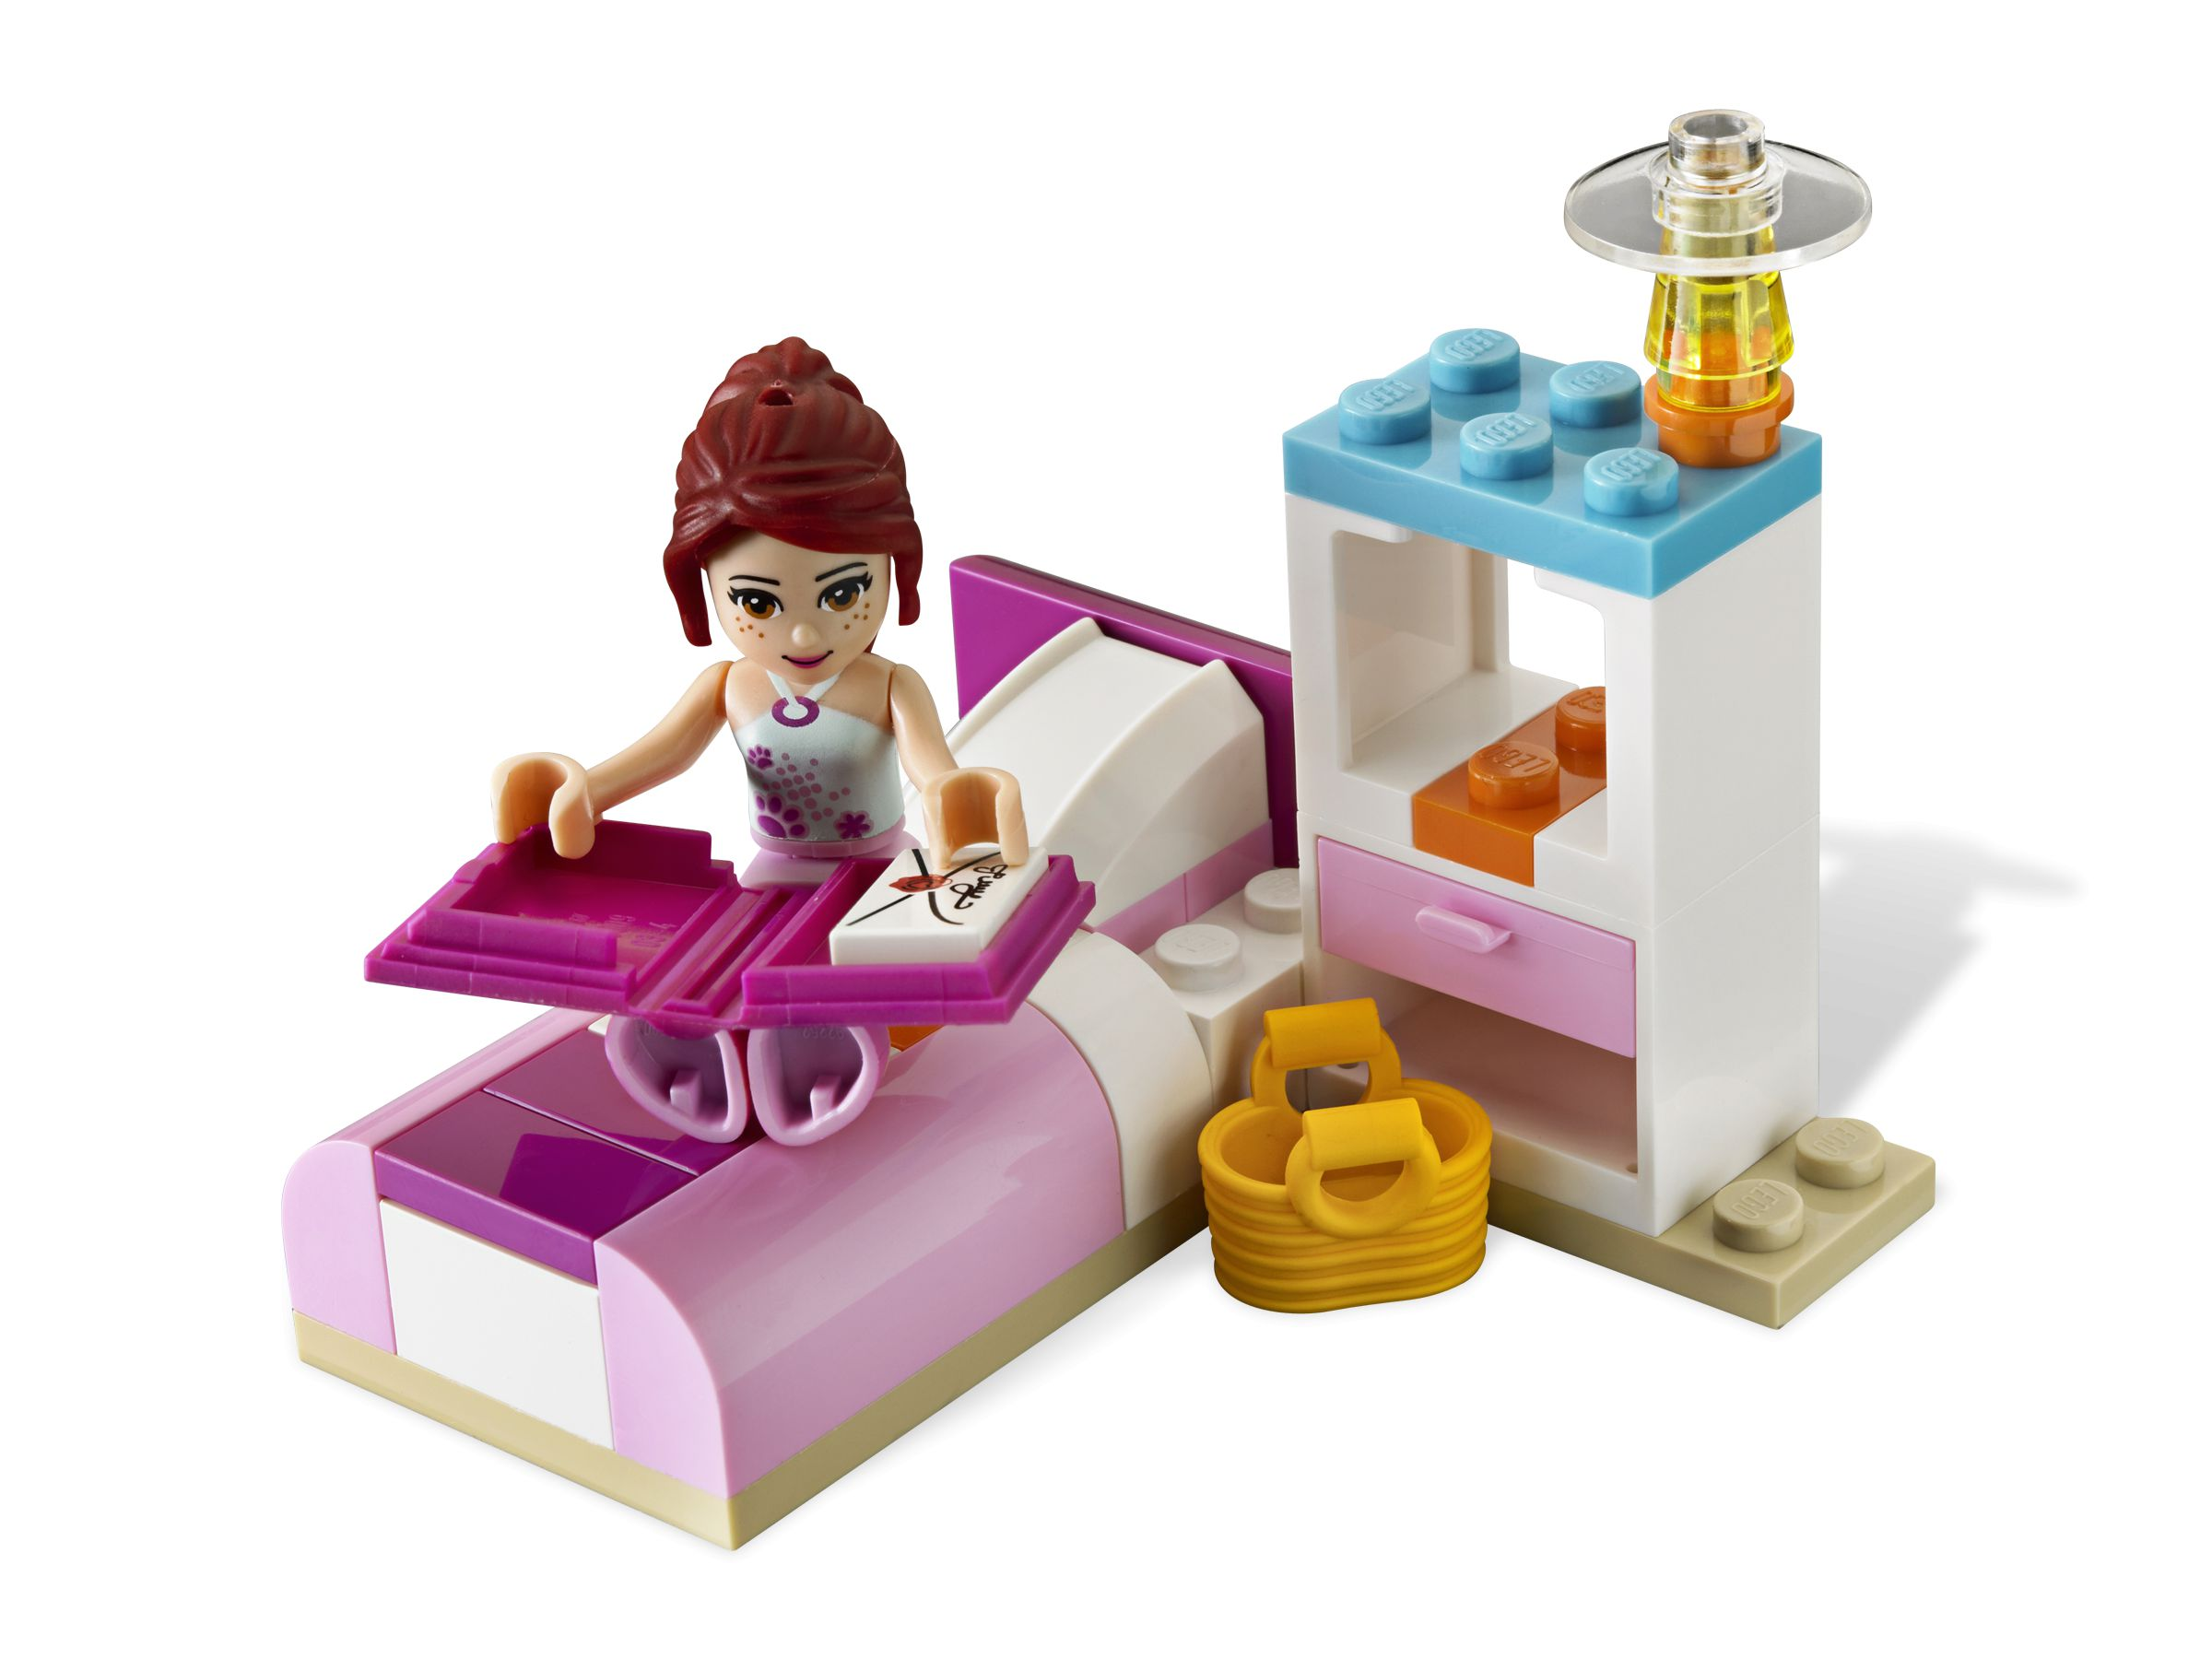 LEGO Friends 3939 Mia's Bedroom LEGO_3939_alt2.jpg